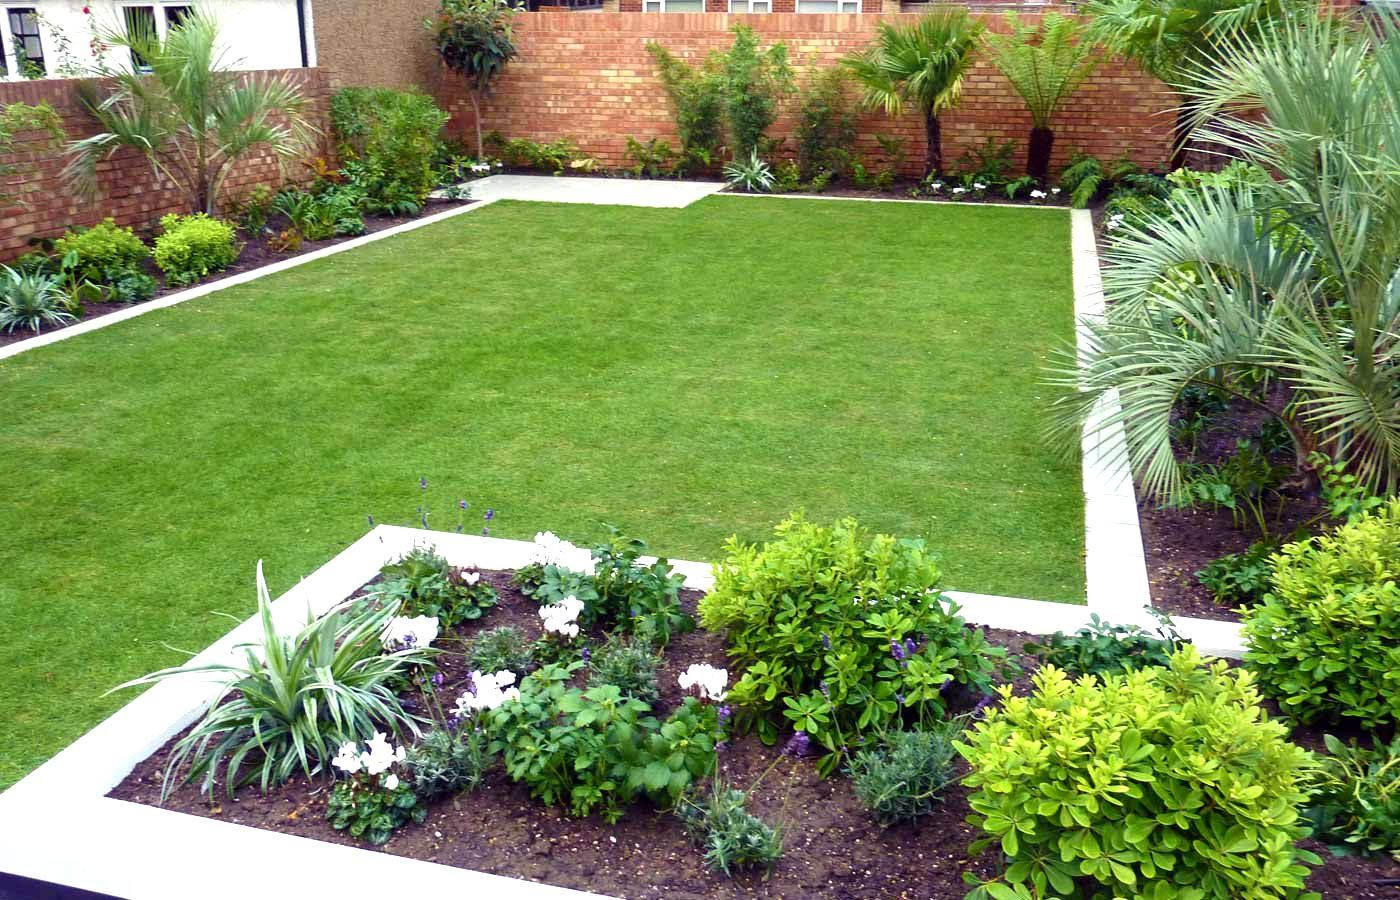 16 small backyard ideas easy designs for tiny yard on layouts and landscaping small backyards ideas id=32004